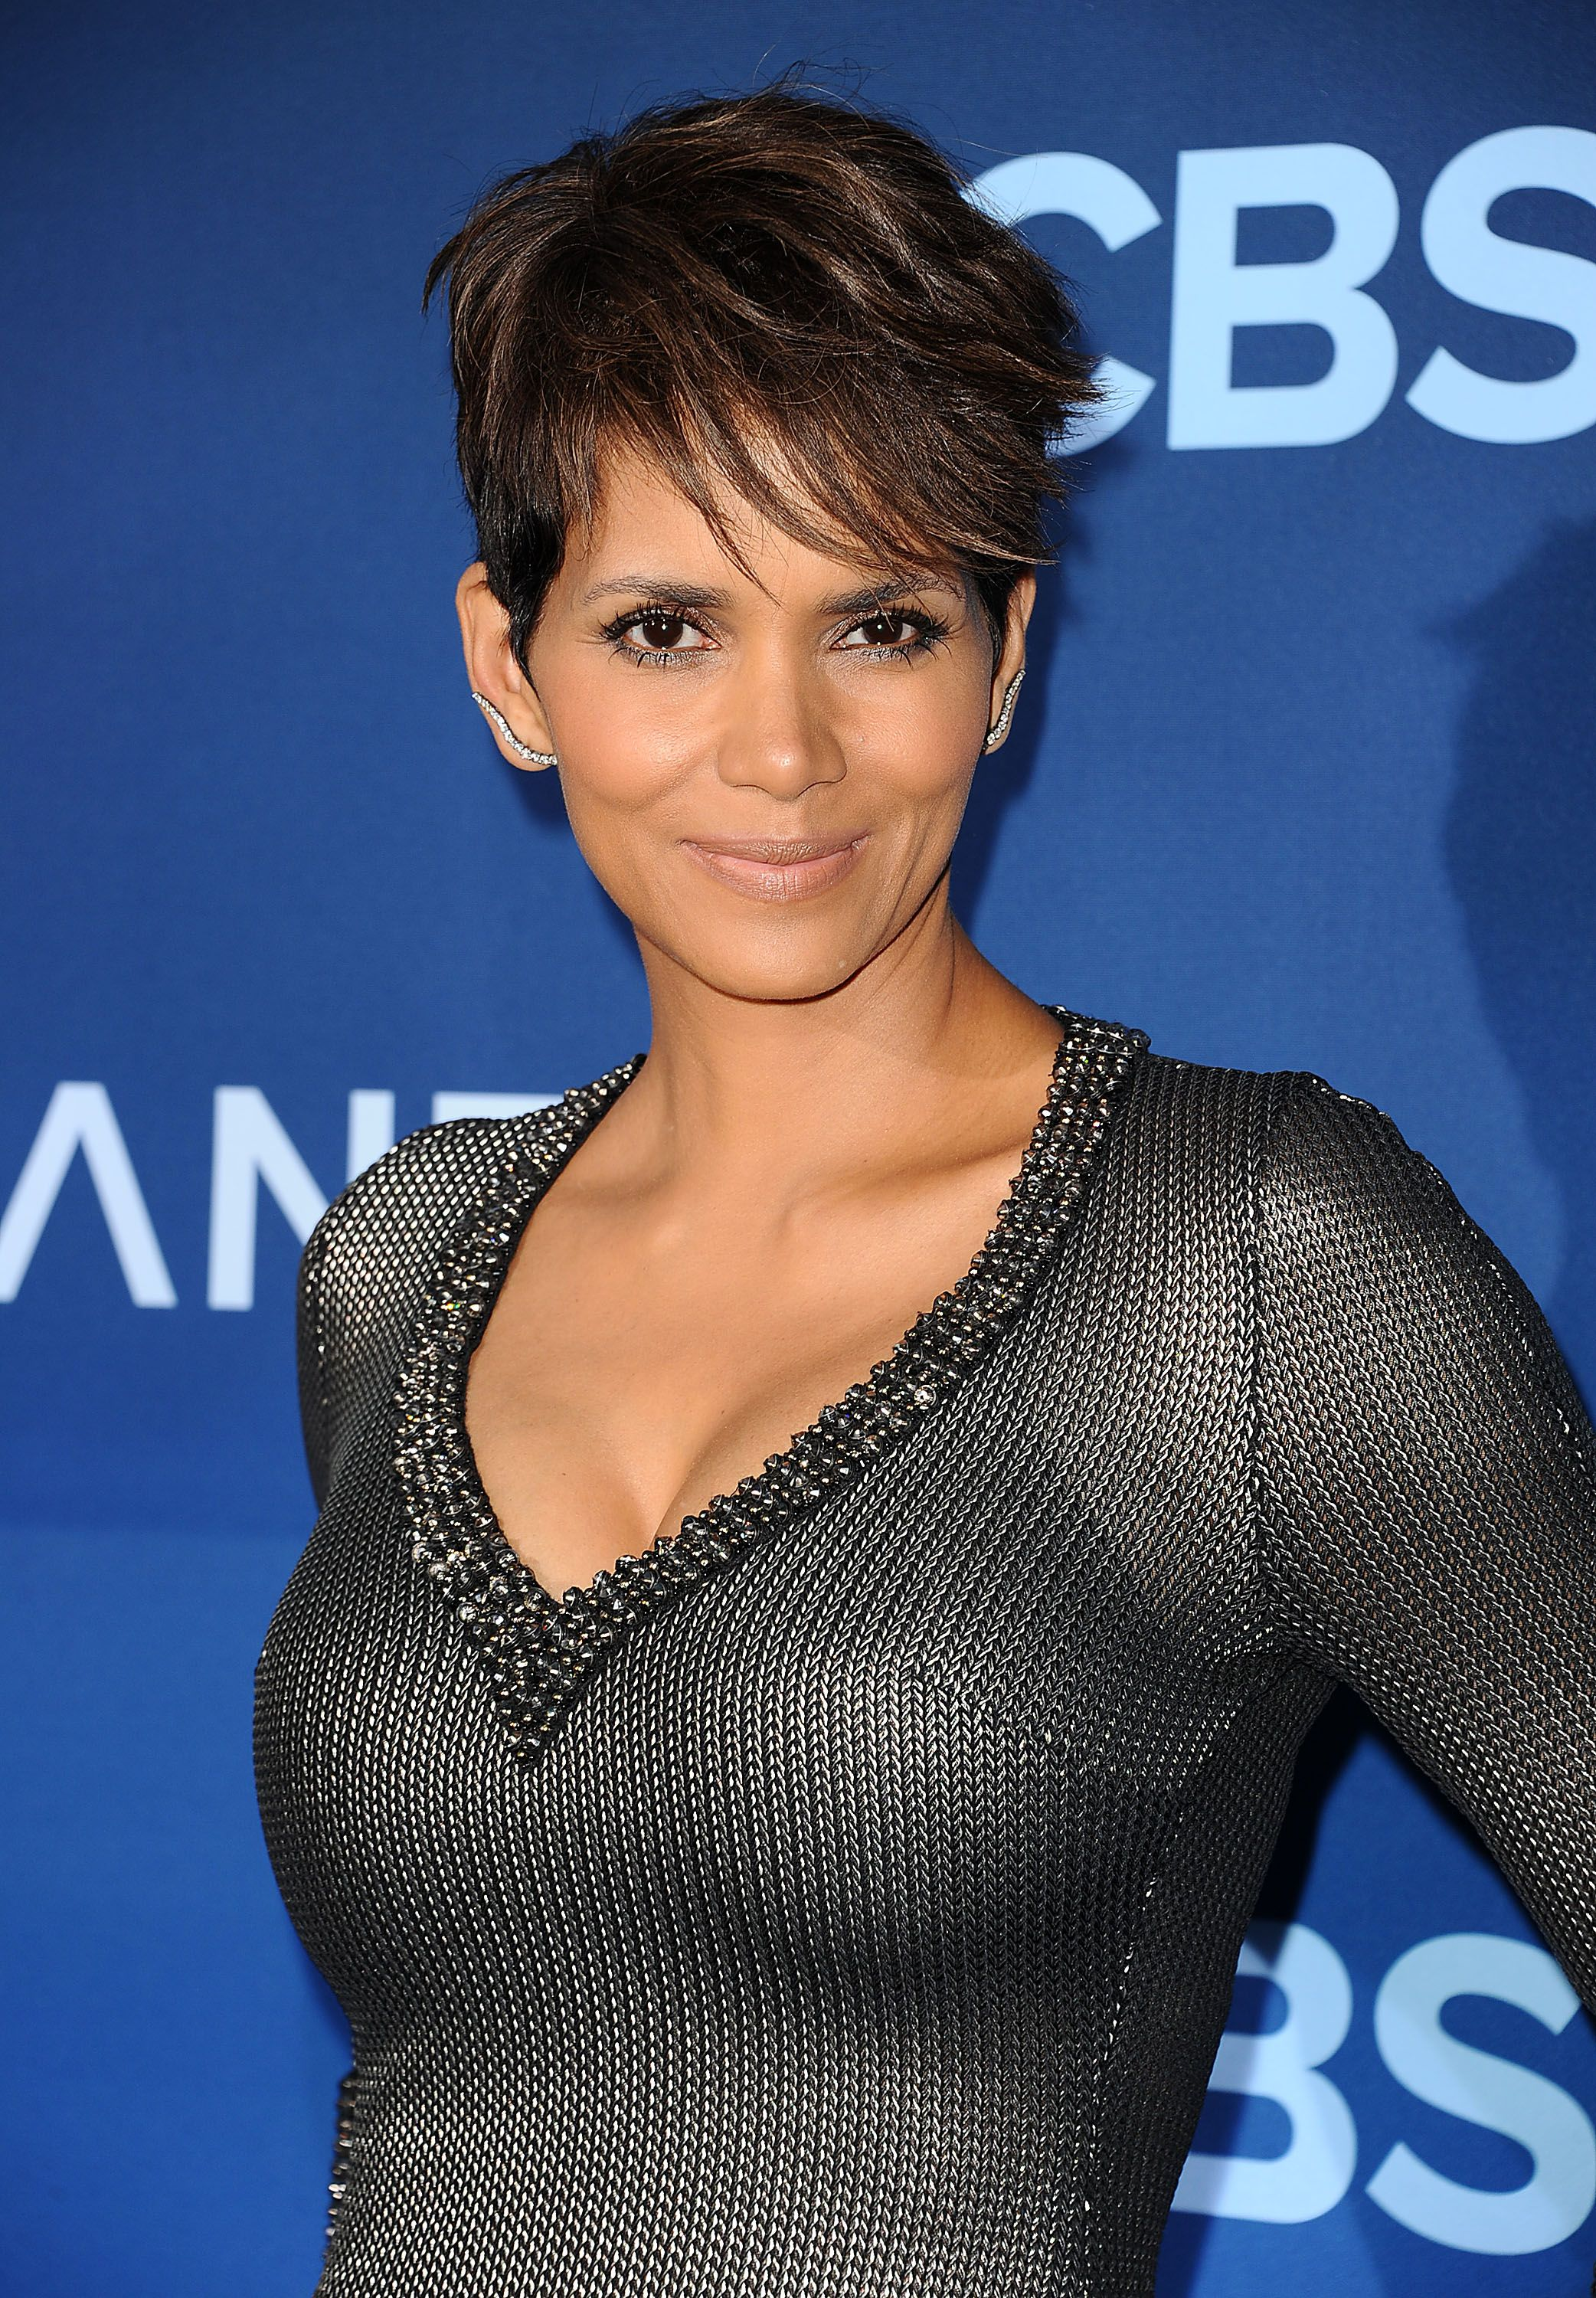 Latest Halle Berry News, Photos and Videos | Halle berry ...